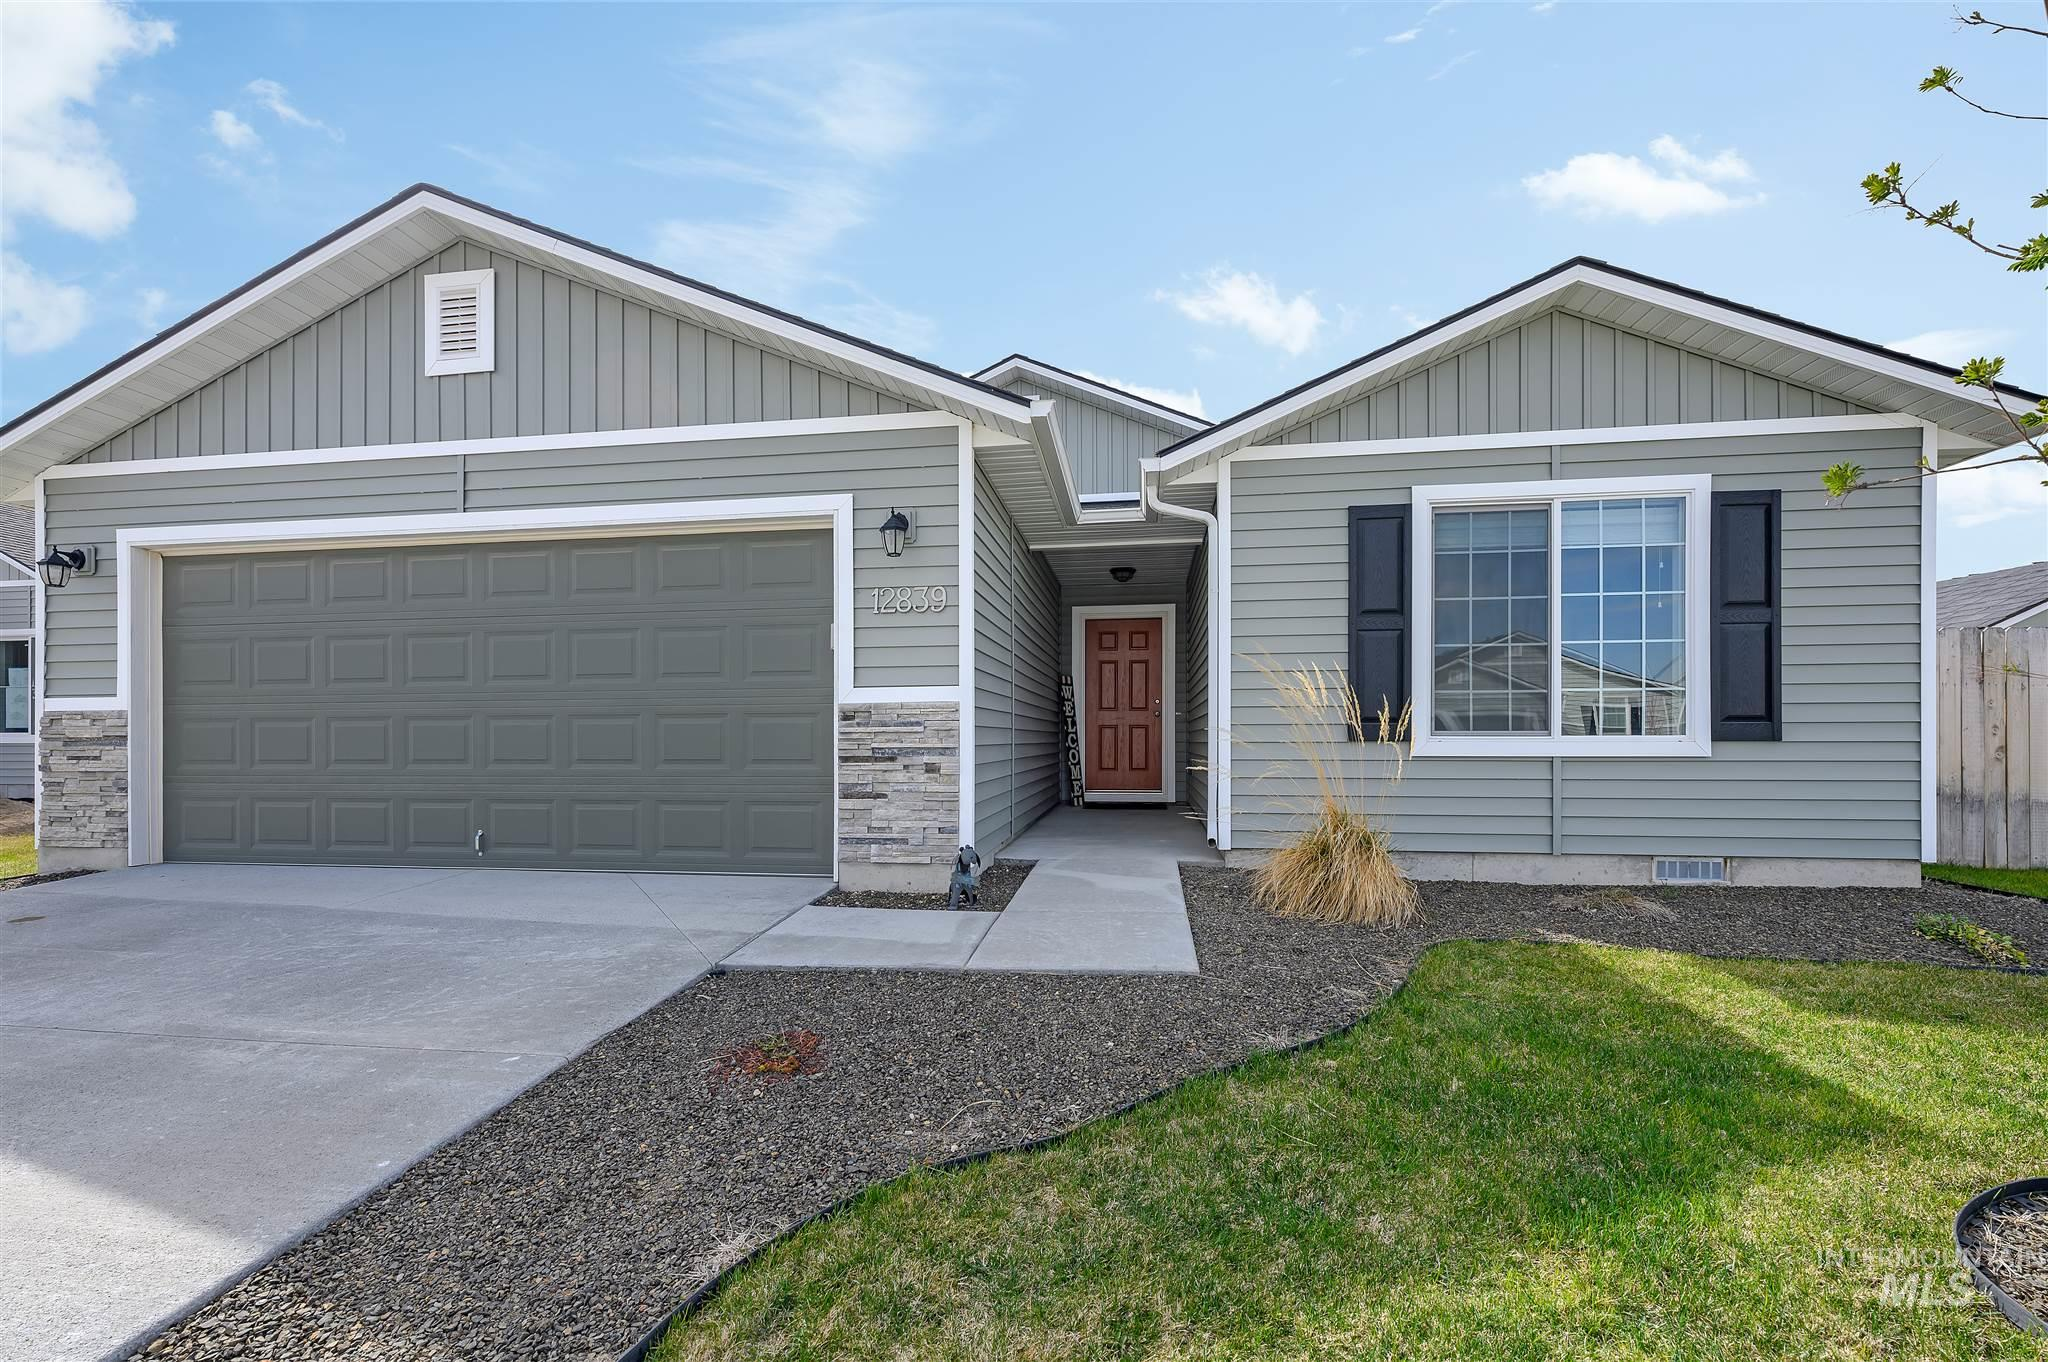 12839 Sondra Property Photo - Caldwell, ID real estate listing